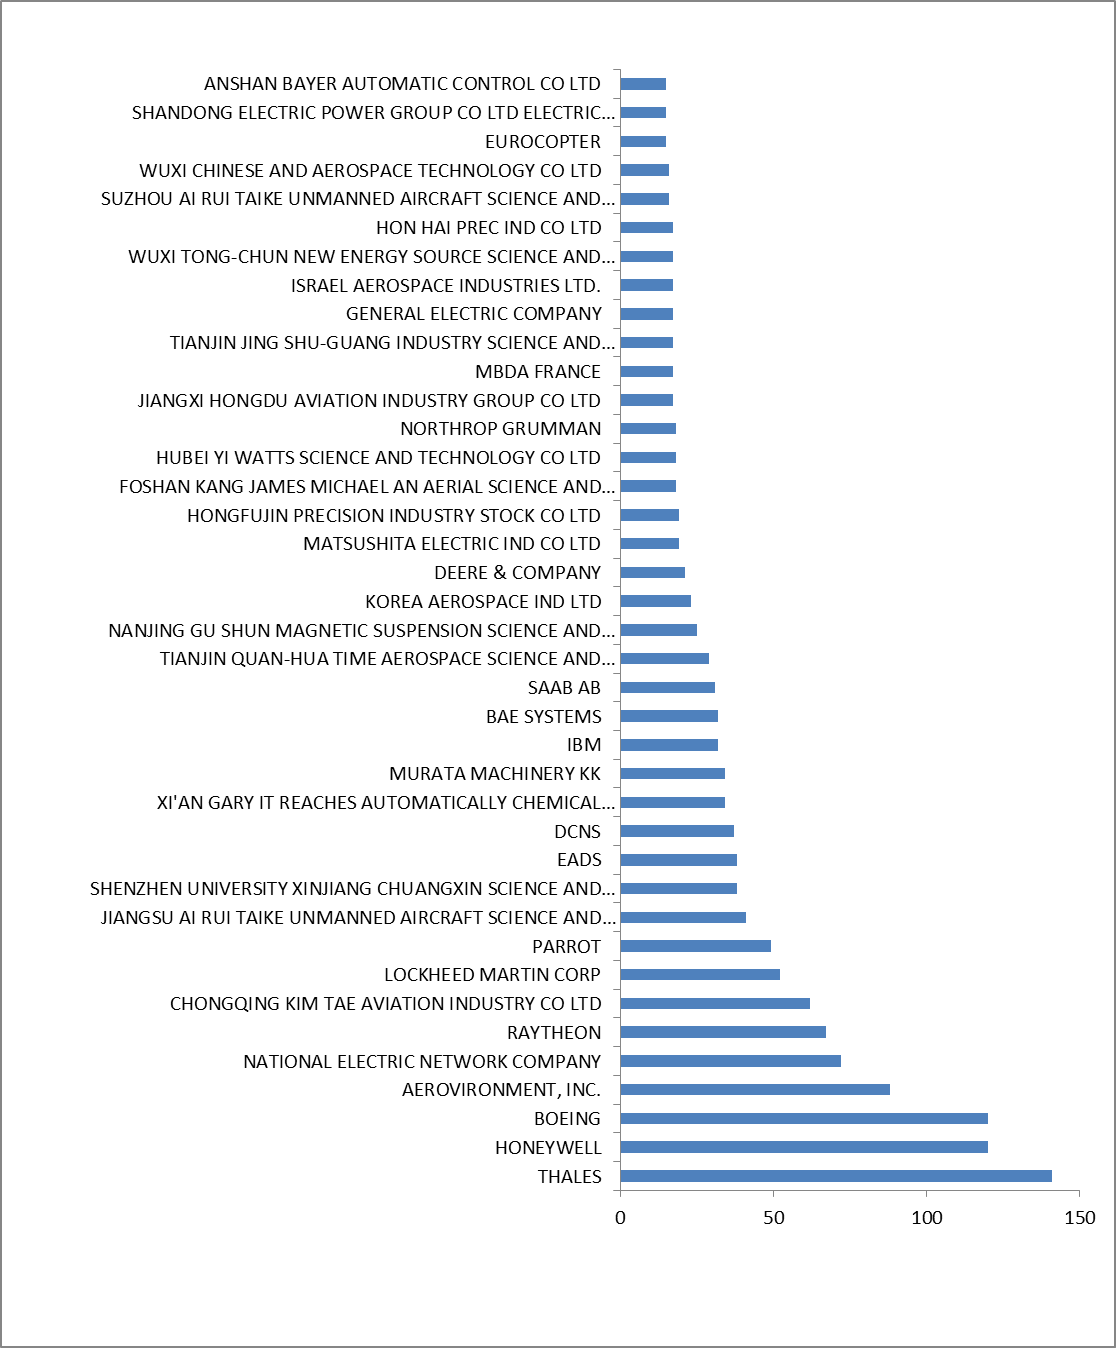 Figure 3: Top patent assignees/applicants (companies). Source: IFI Claims.